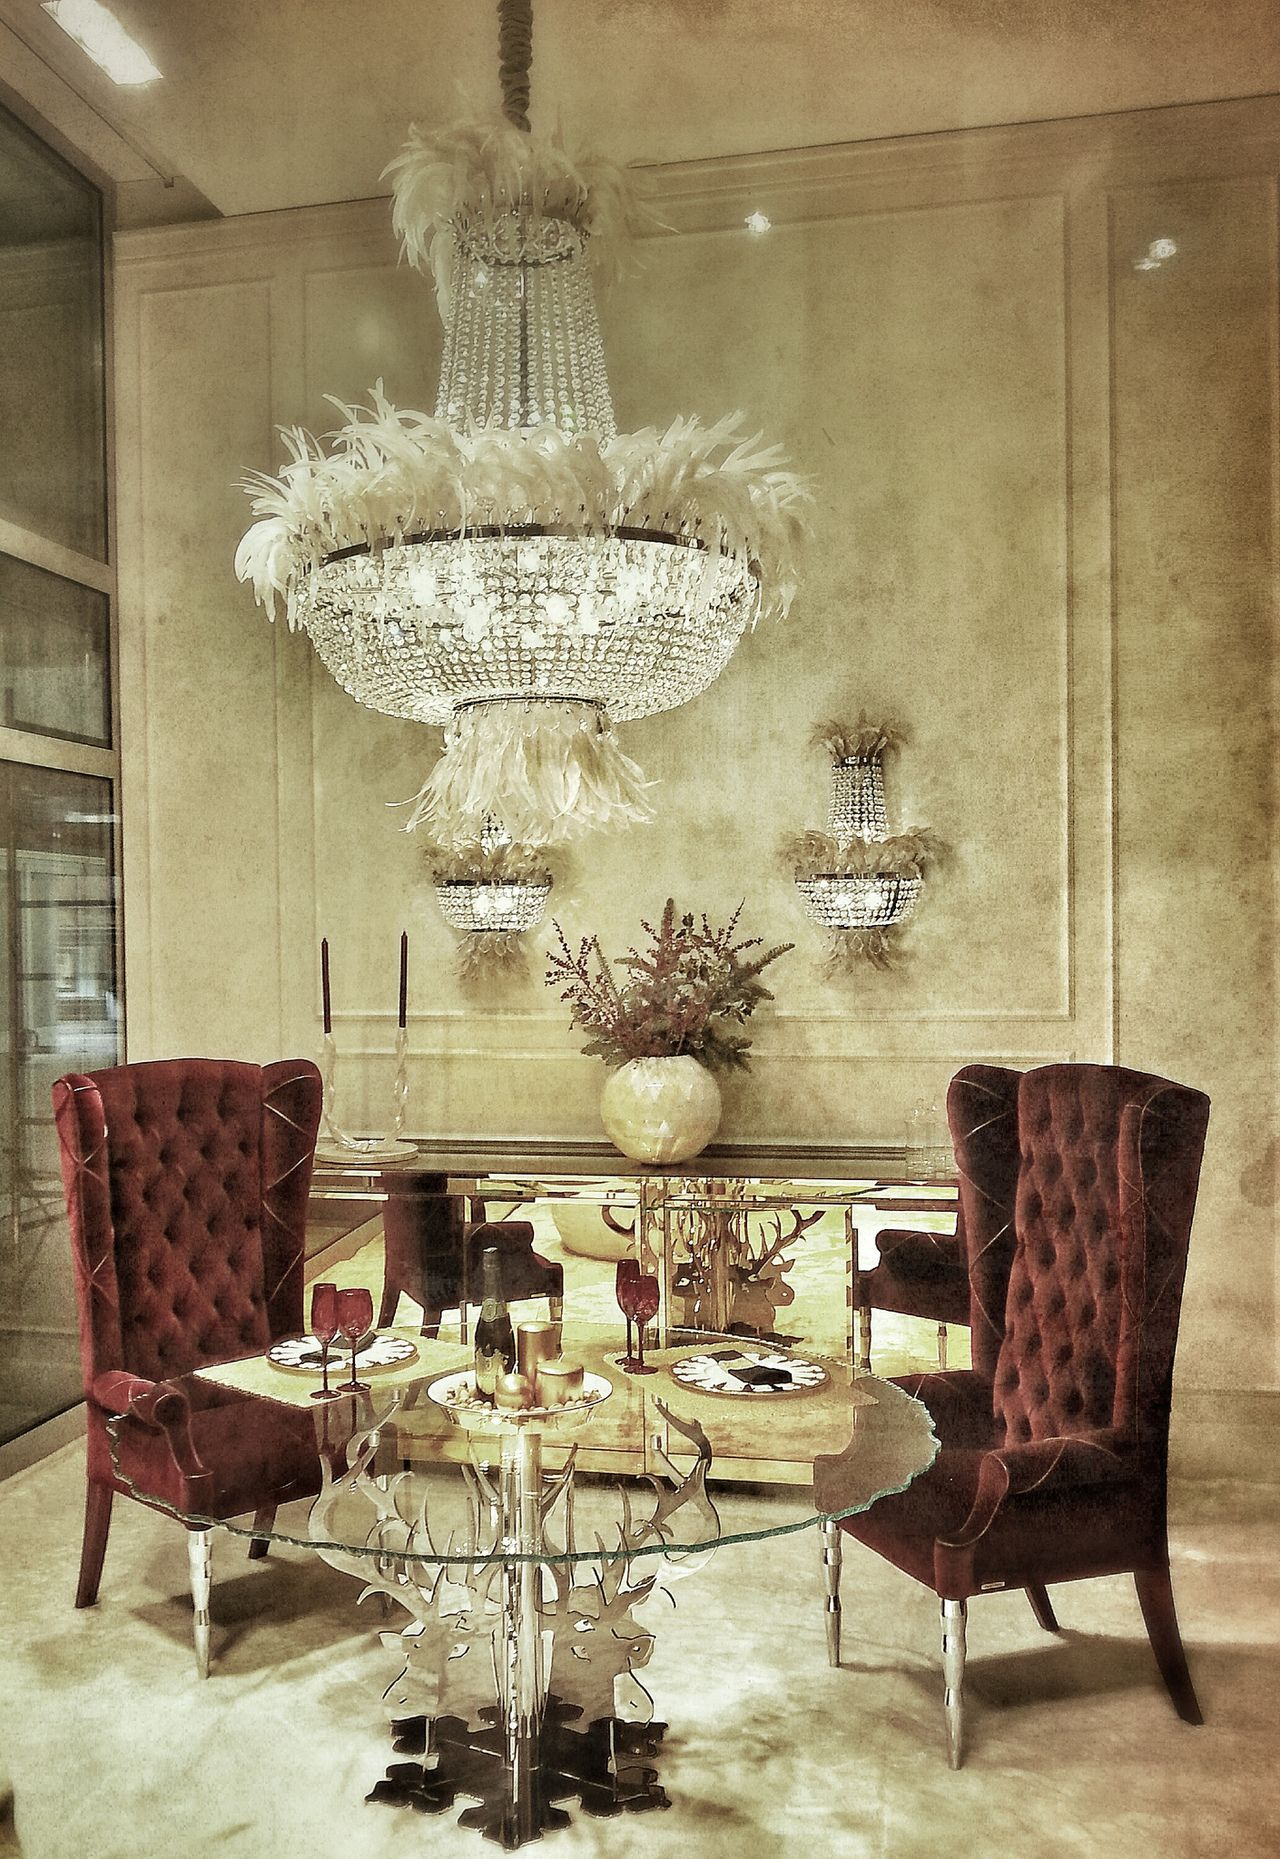 Easy idea interiors classic luxury chic interiors for Luxury classic interior design